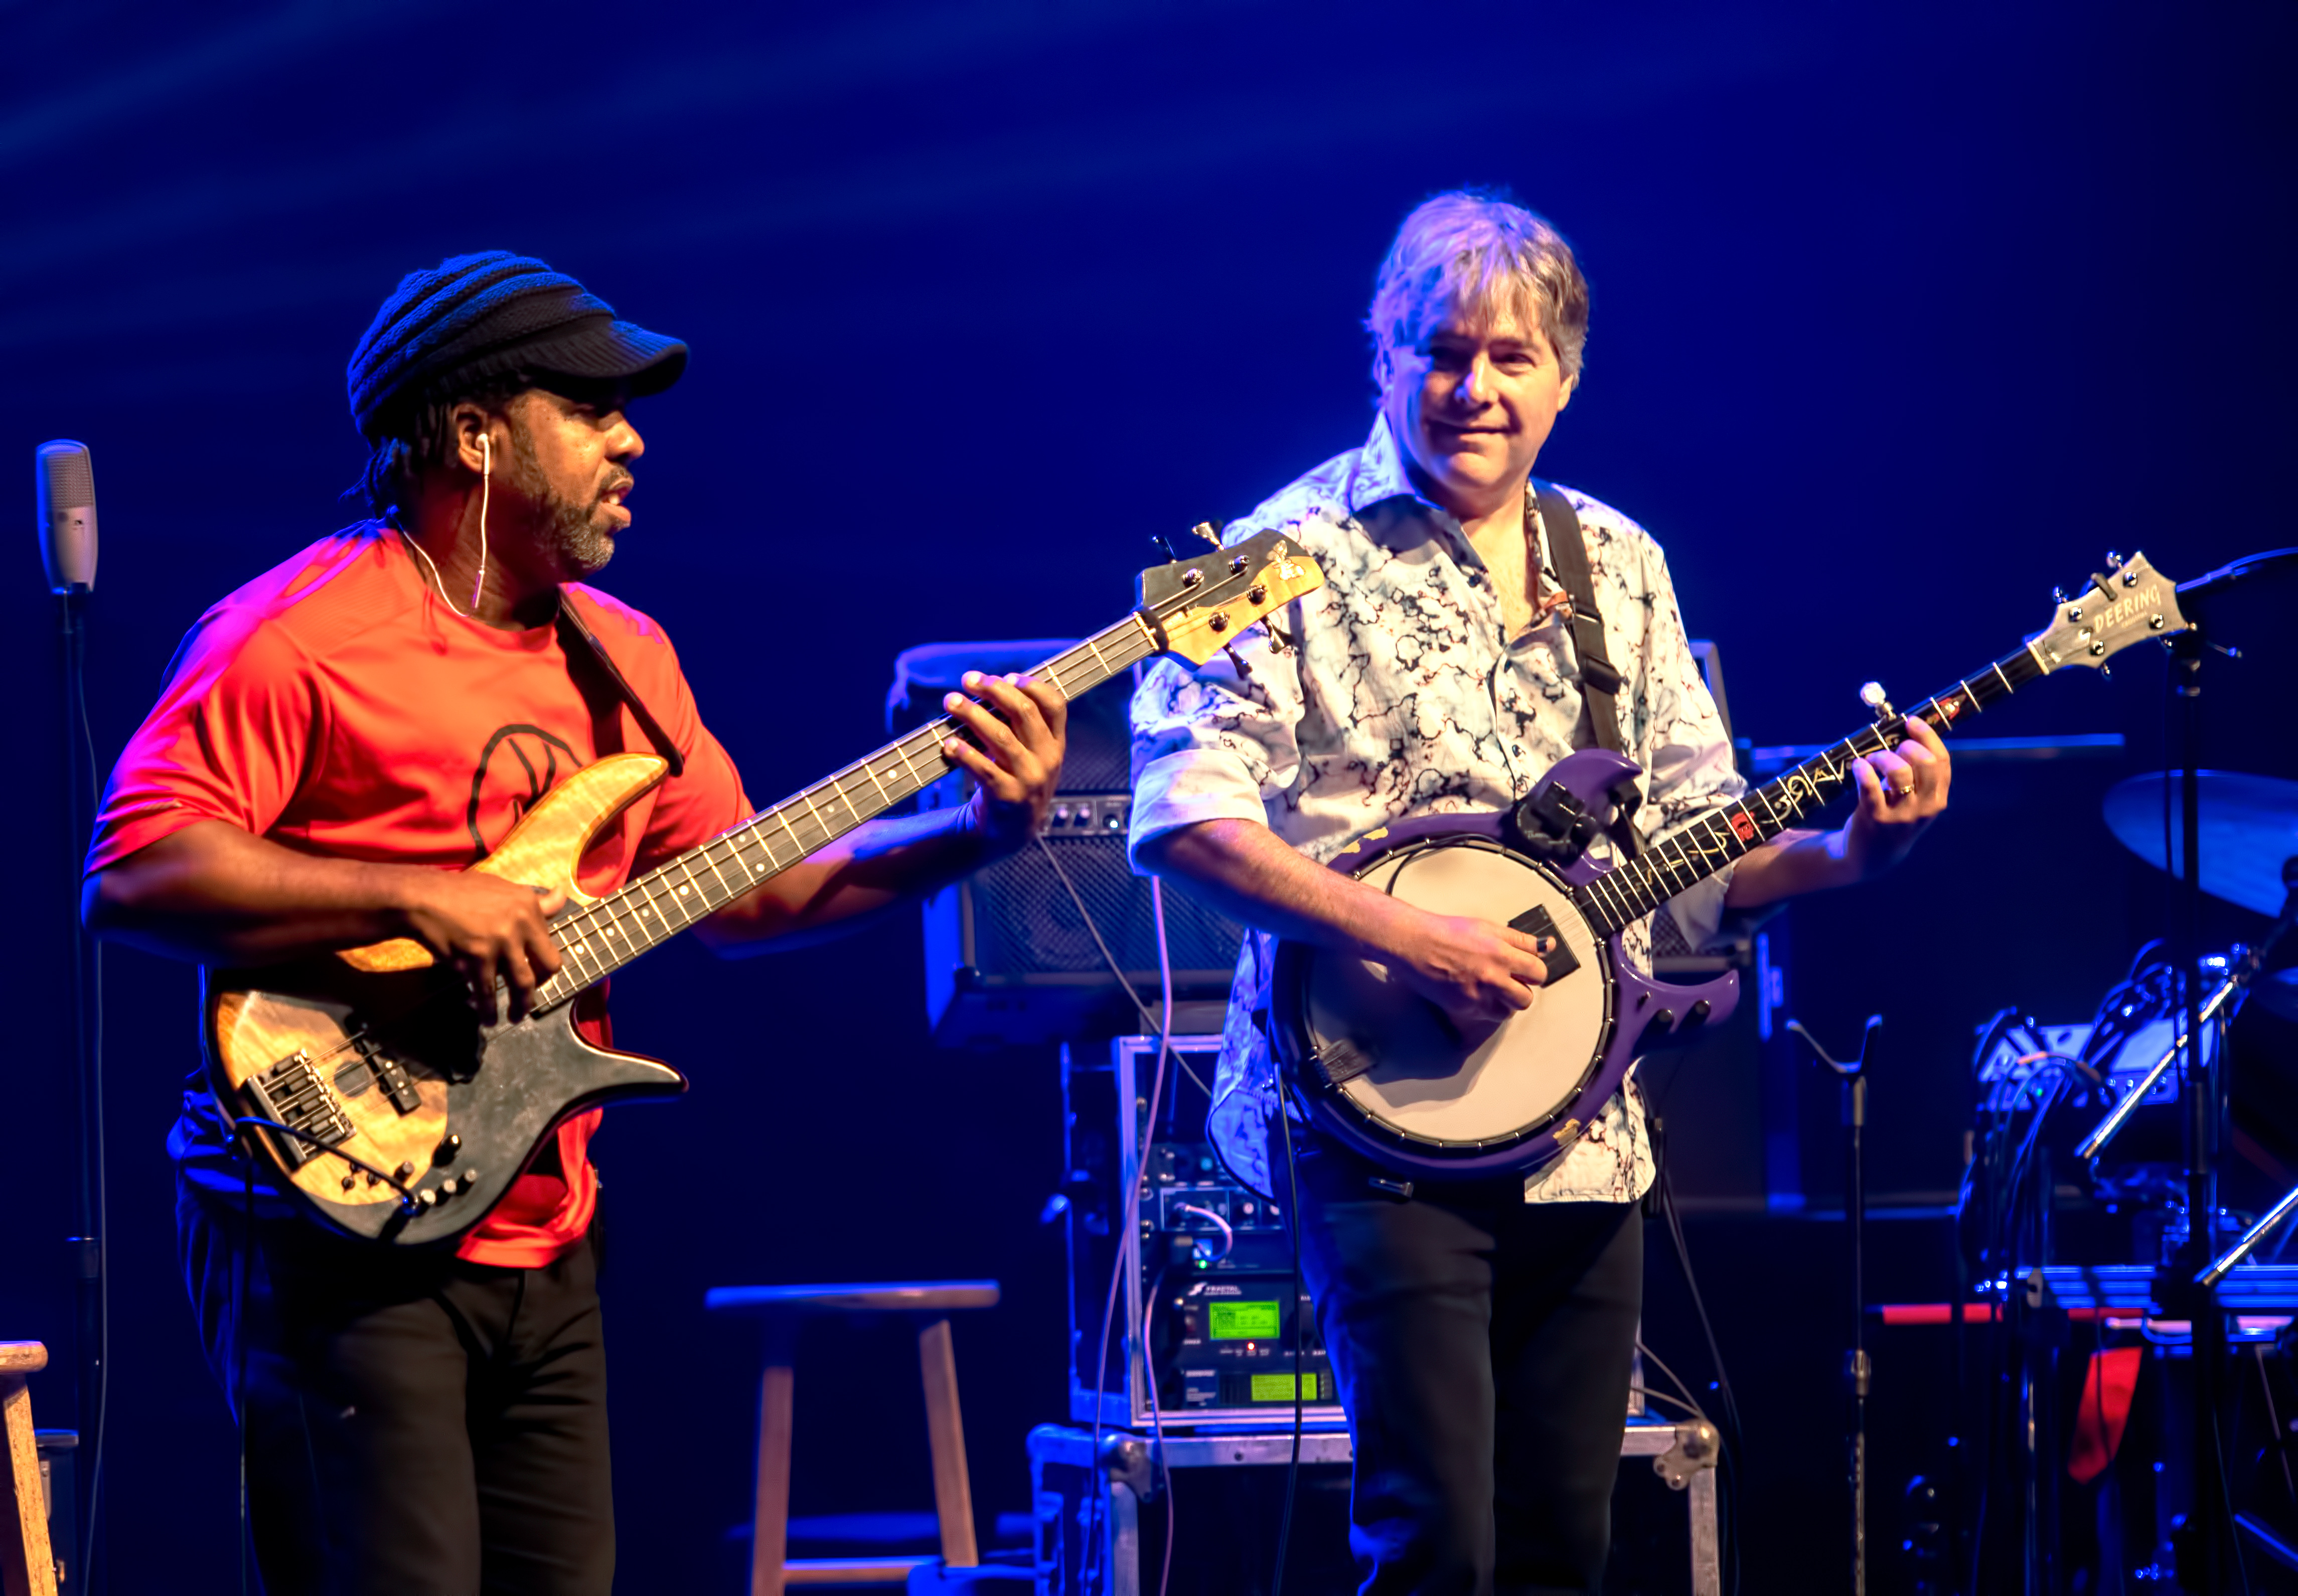 Victor Wooten with Bela Fleck and the Flecktones at The Montreal International Jazz Festival 2018